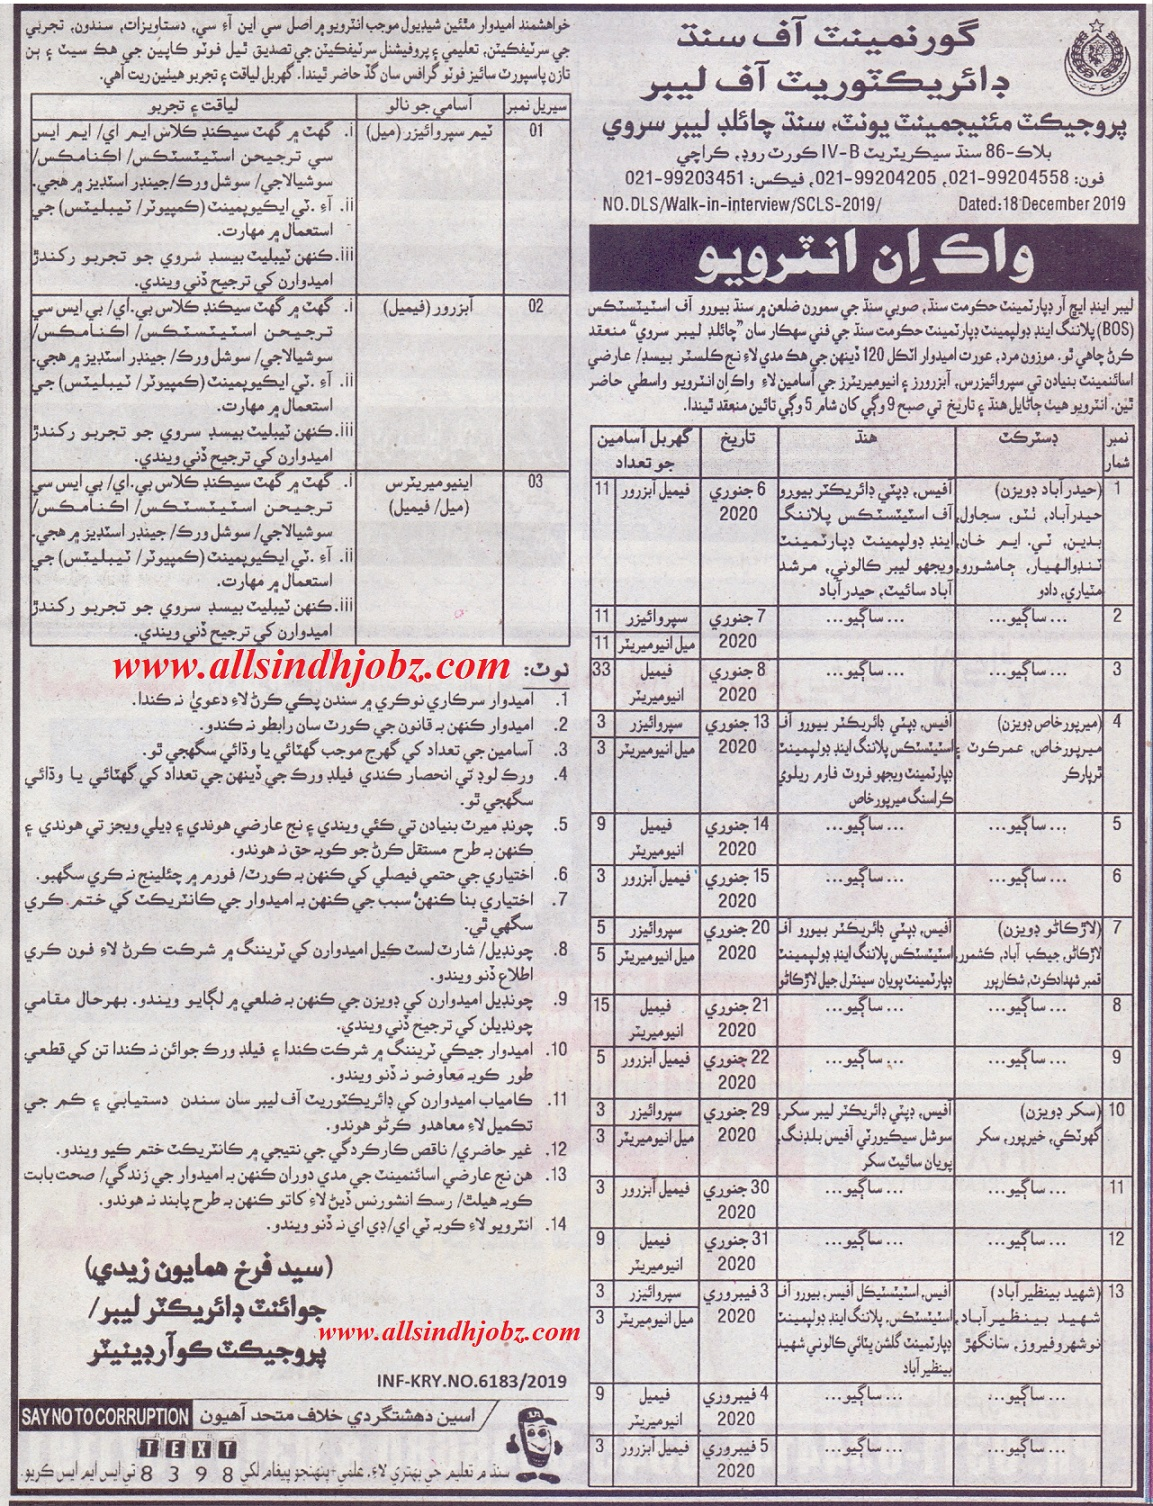 Walk In Interview in Directorate of Labour, Project Management Unit Sindh Child Labour Survey Jobs 2019